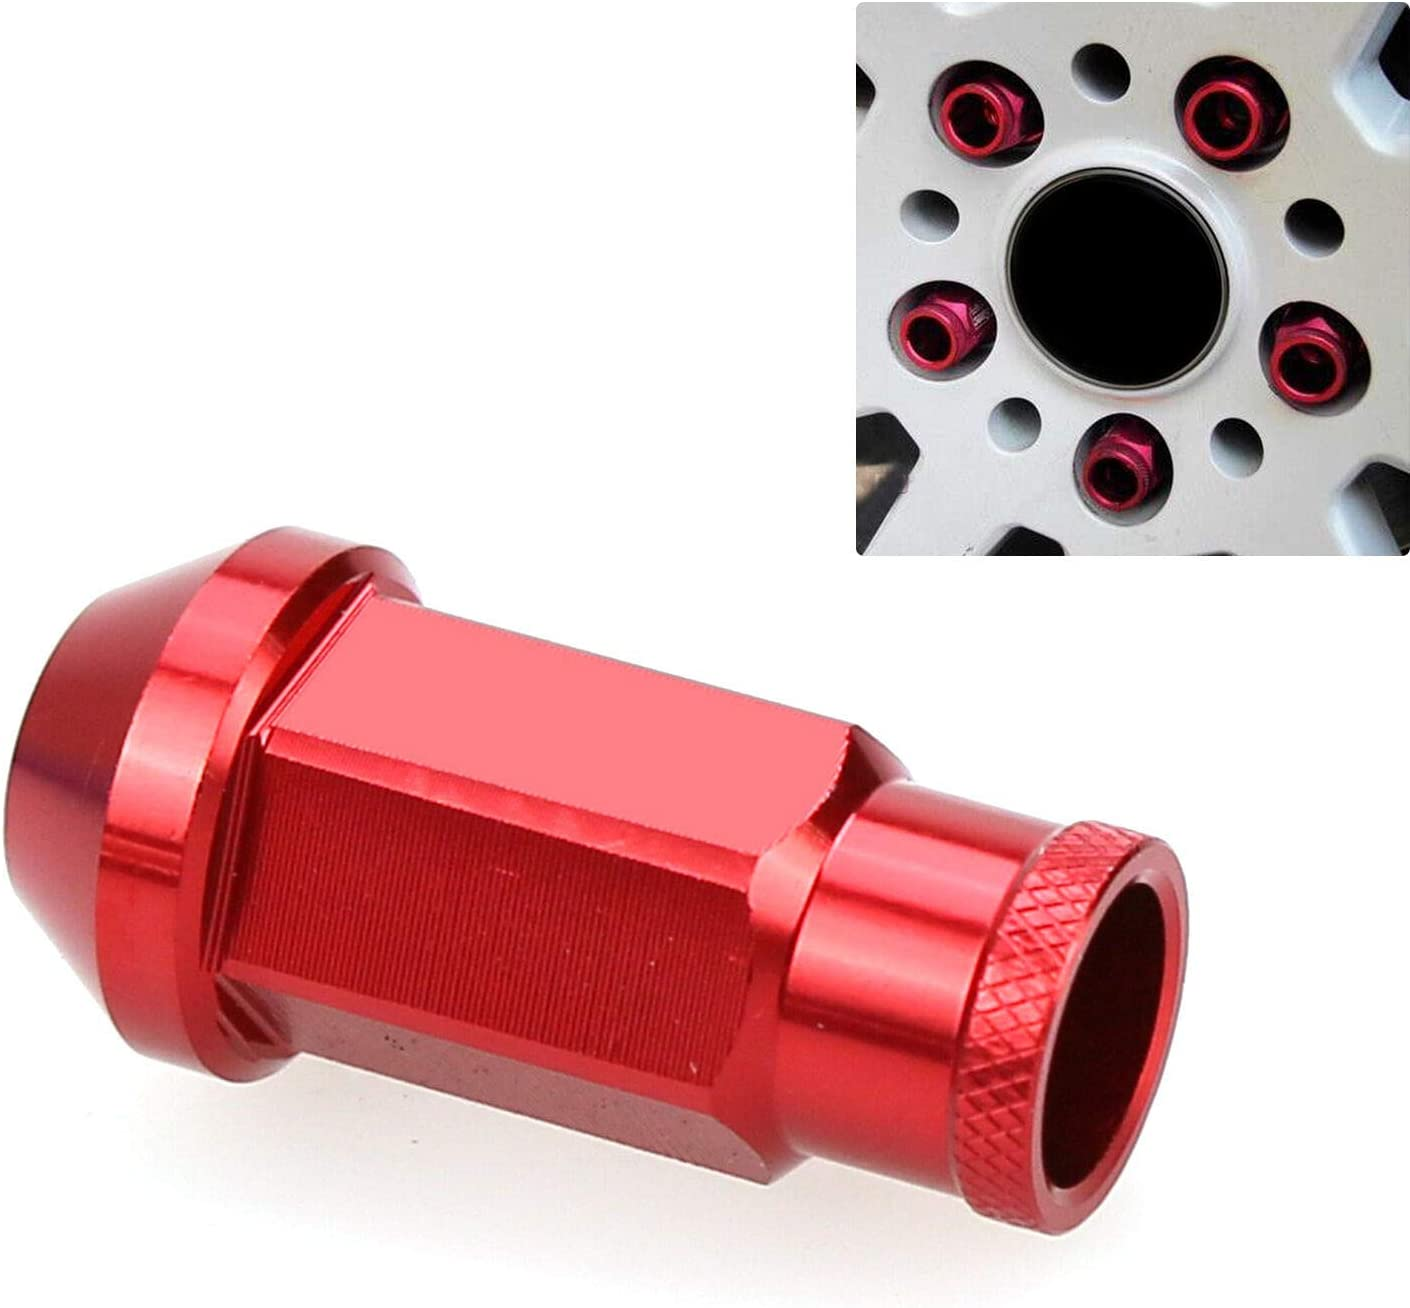 FidgetGear Red JDM Racing Wheel Lug Nuts M12X1.5MM 20Pcs Fit Mitsubishi CIVIC ACURA